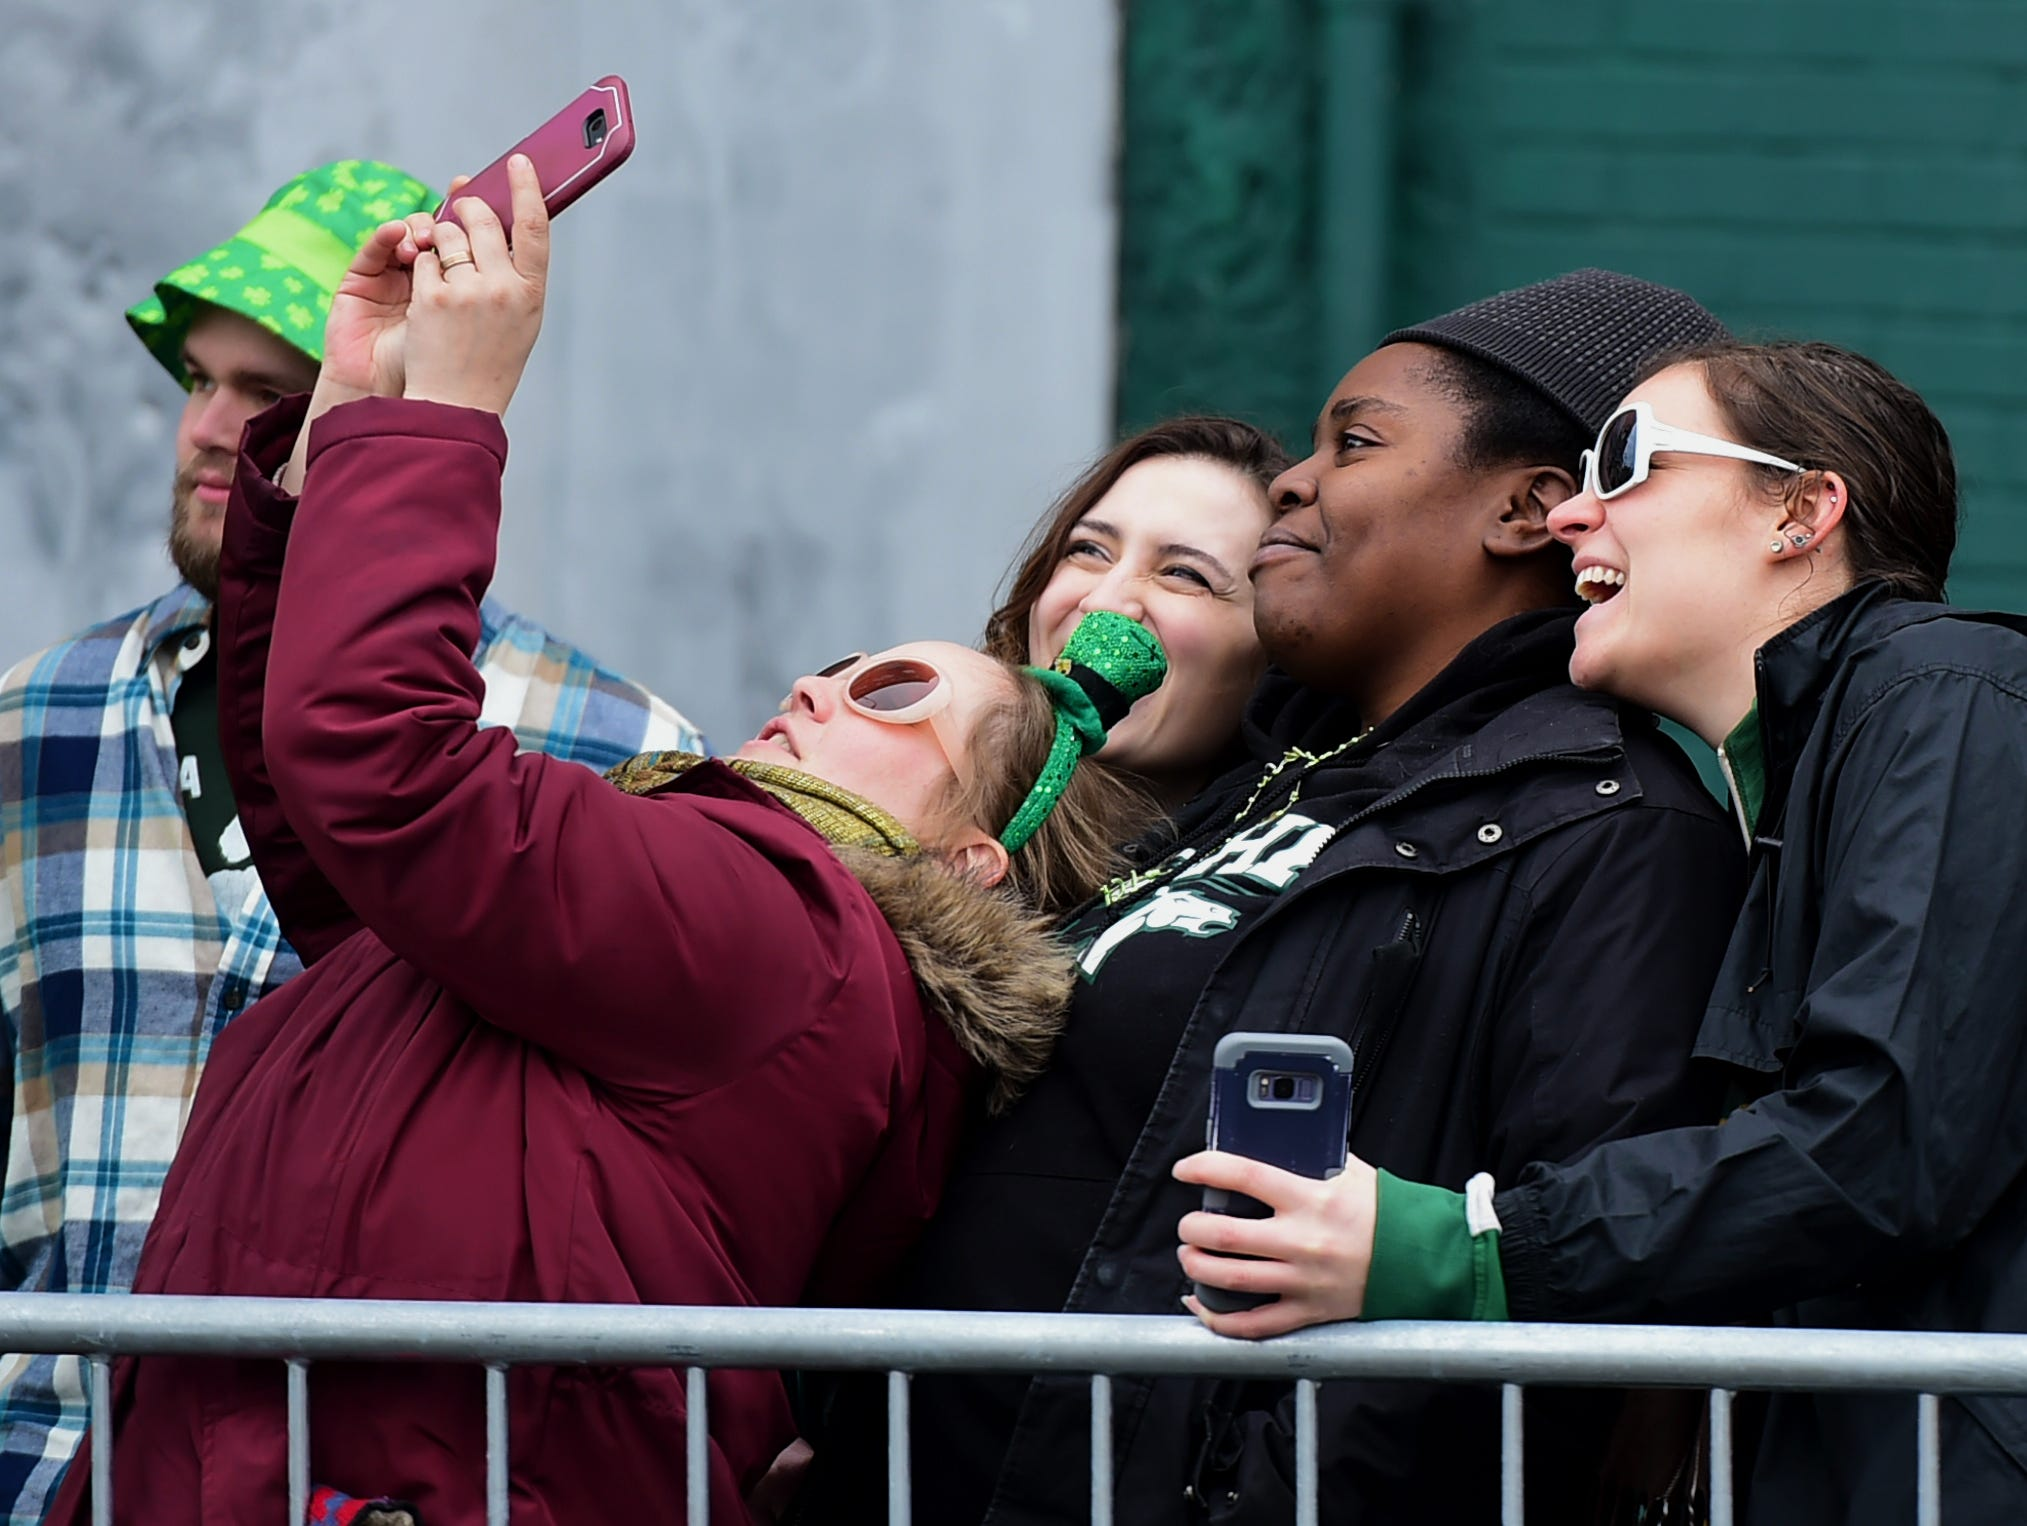 The annual St. Patrick's Day Parade in downtown Binghamton drew thousands to celebrate Ireland's patron saint. March 2, 2019.